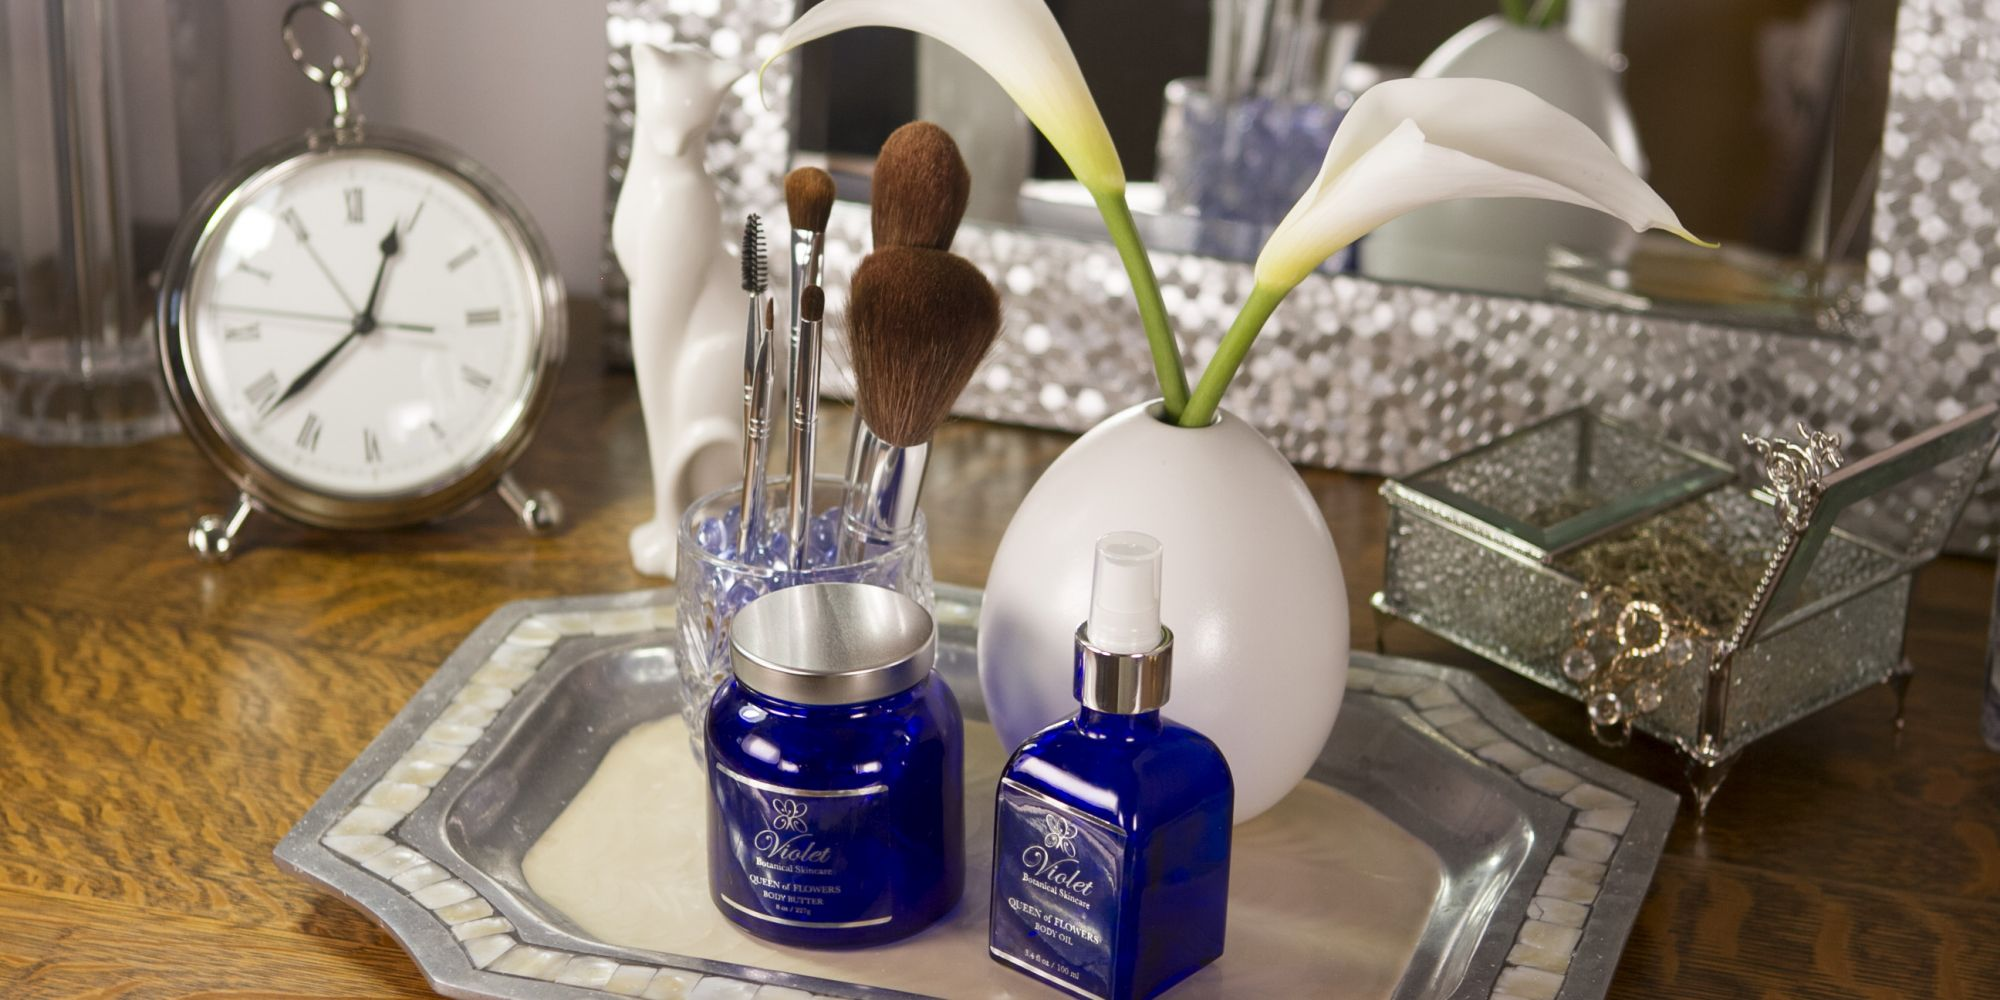 Violet Botanical Skincare Harkens Back To Ancient Times To Ready Products For The Present And Future